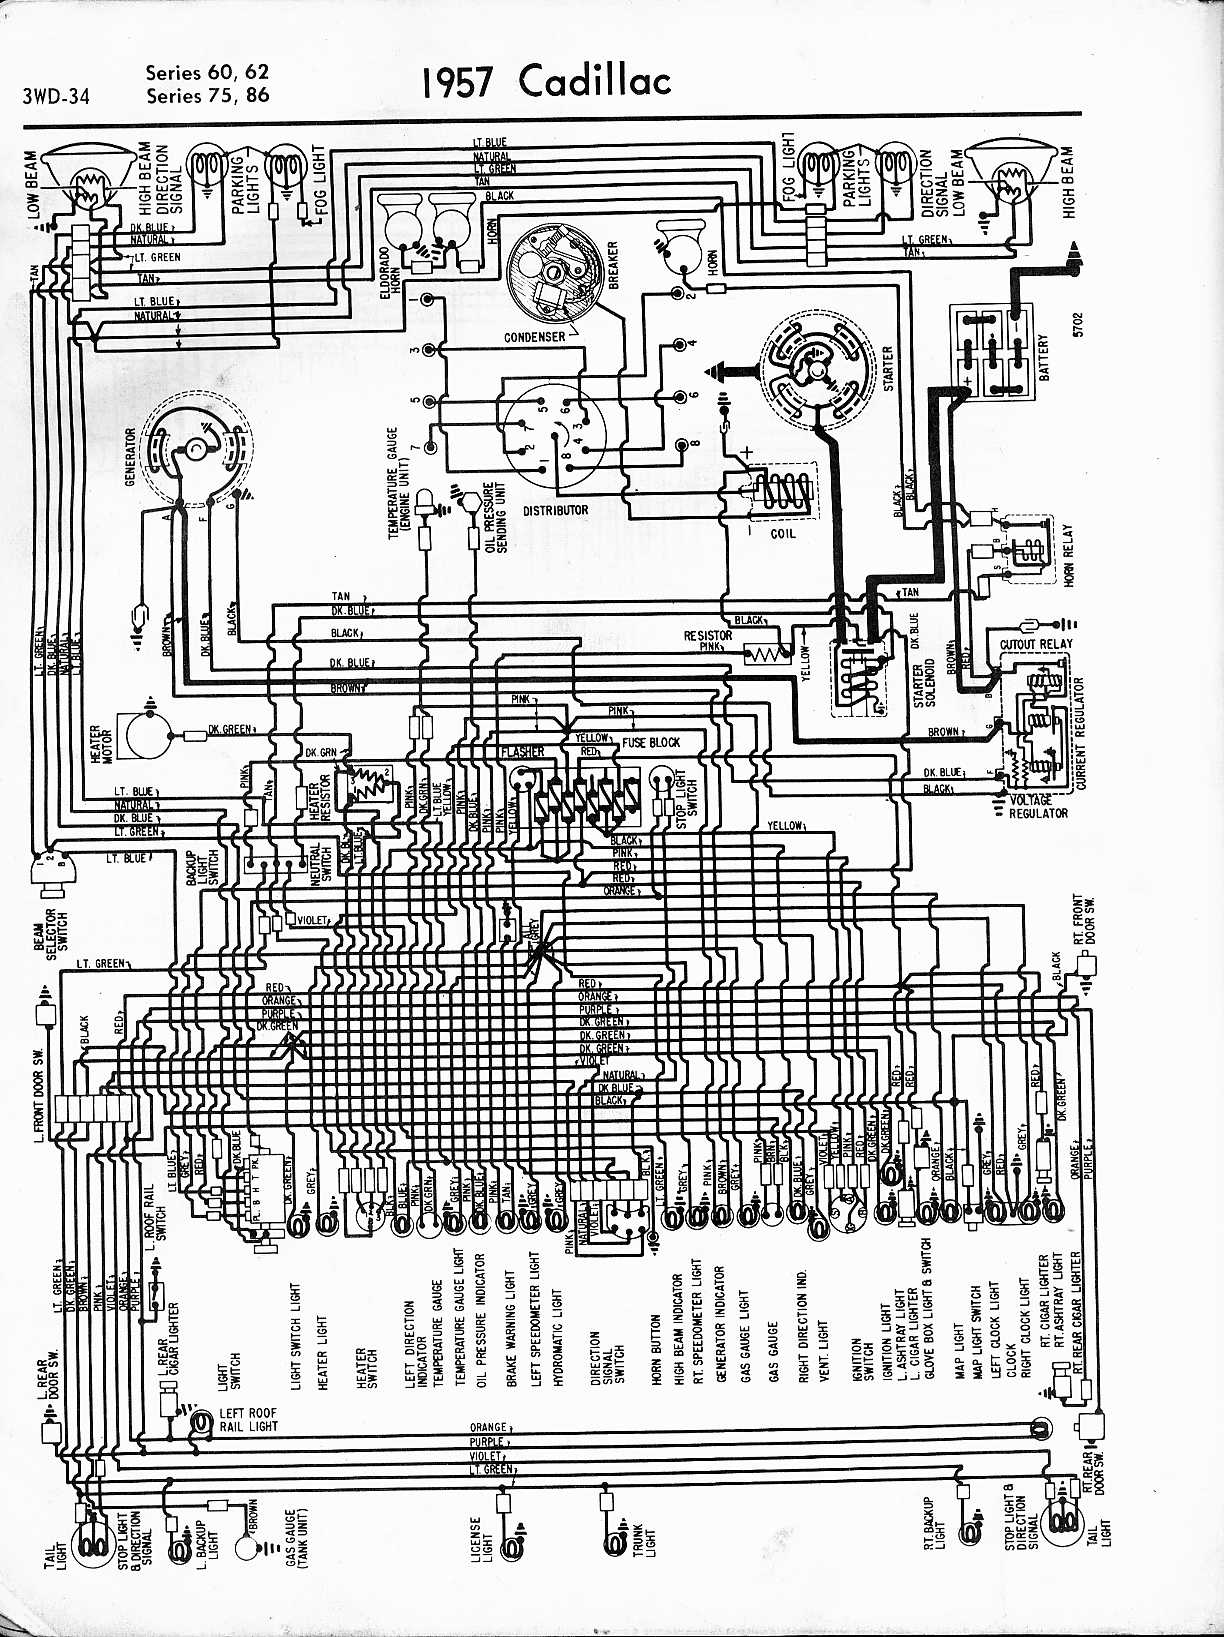 wrg 2199] 1956 chevy distributor wiring diagram schematic chevy wiring diagrams